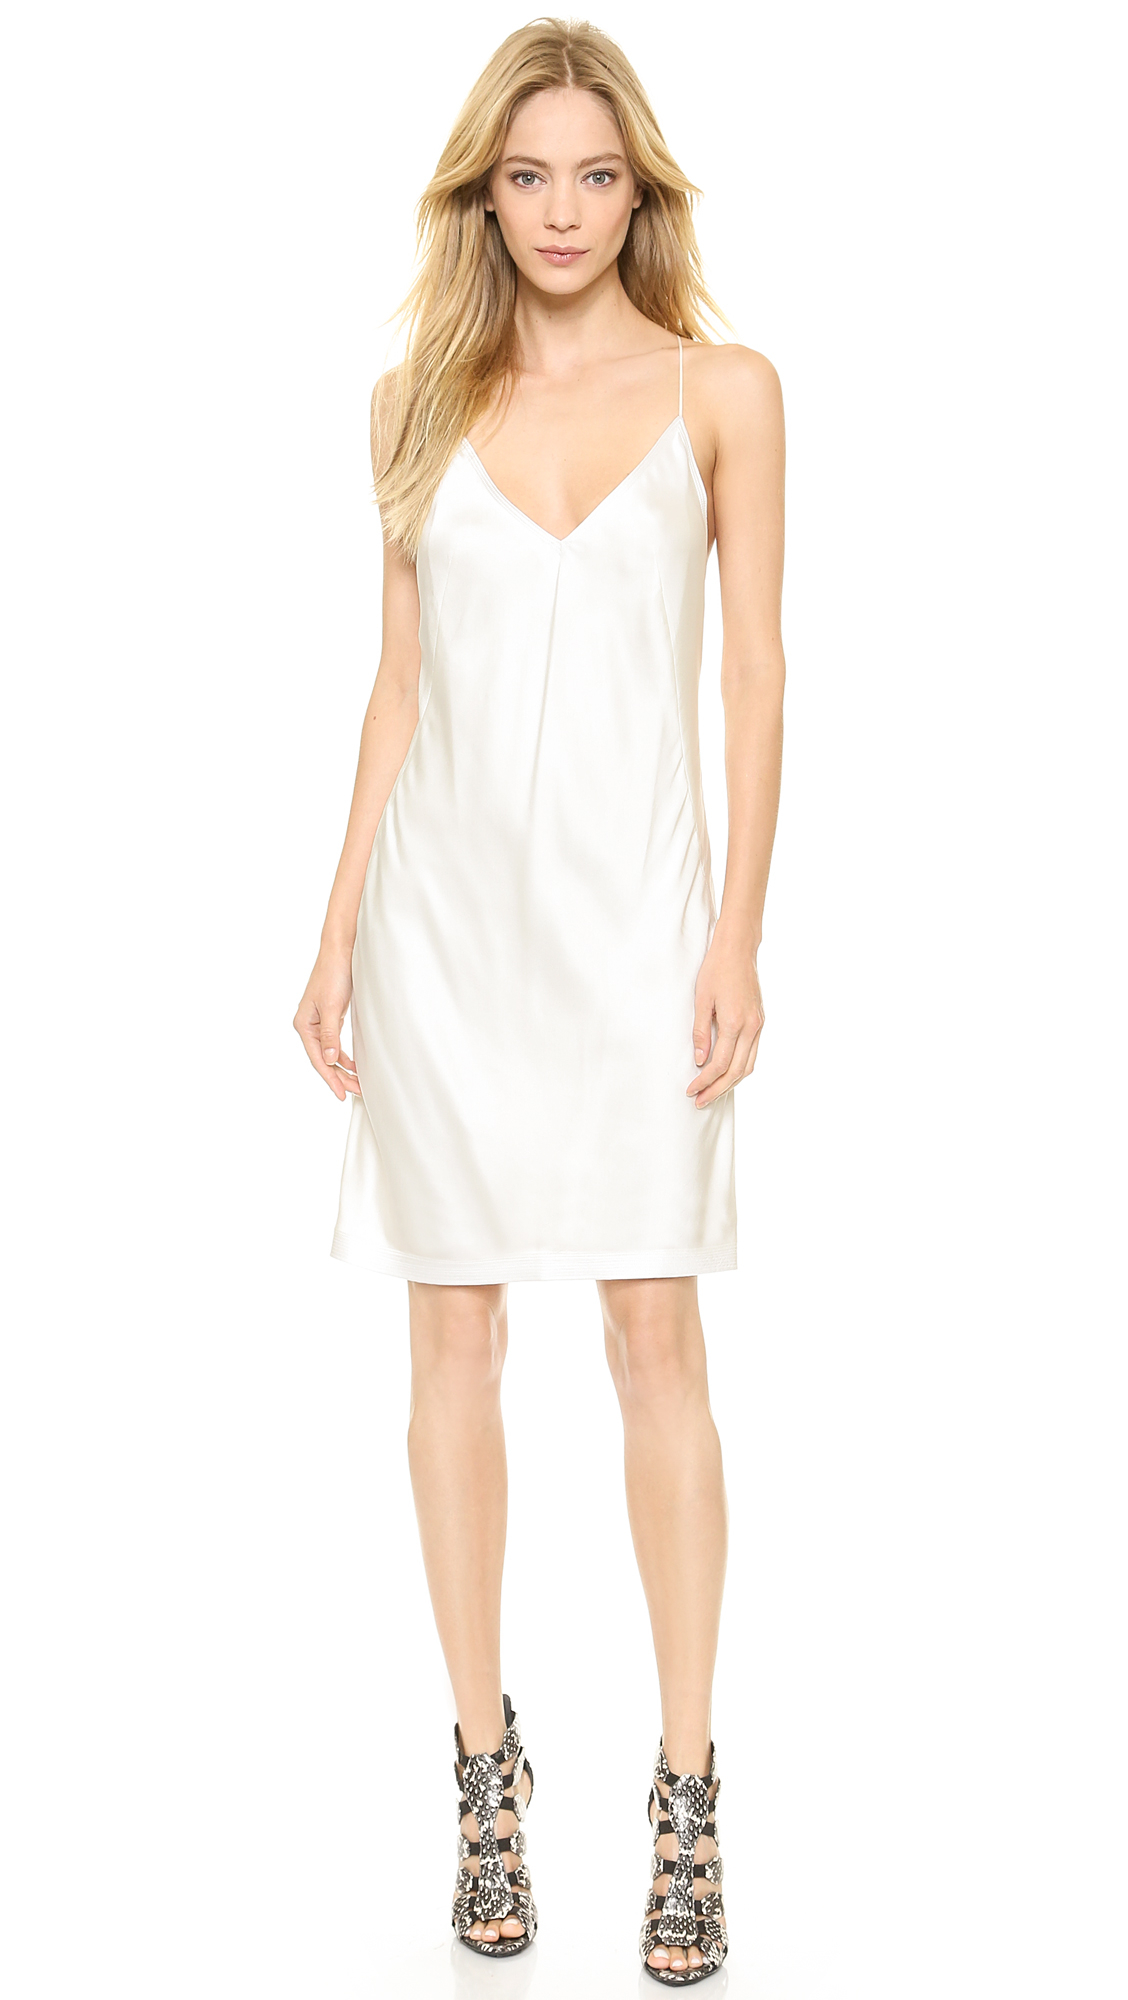 Kaufman franco Silk Slip Dress - Ivory in White  Lyst